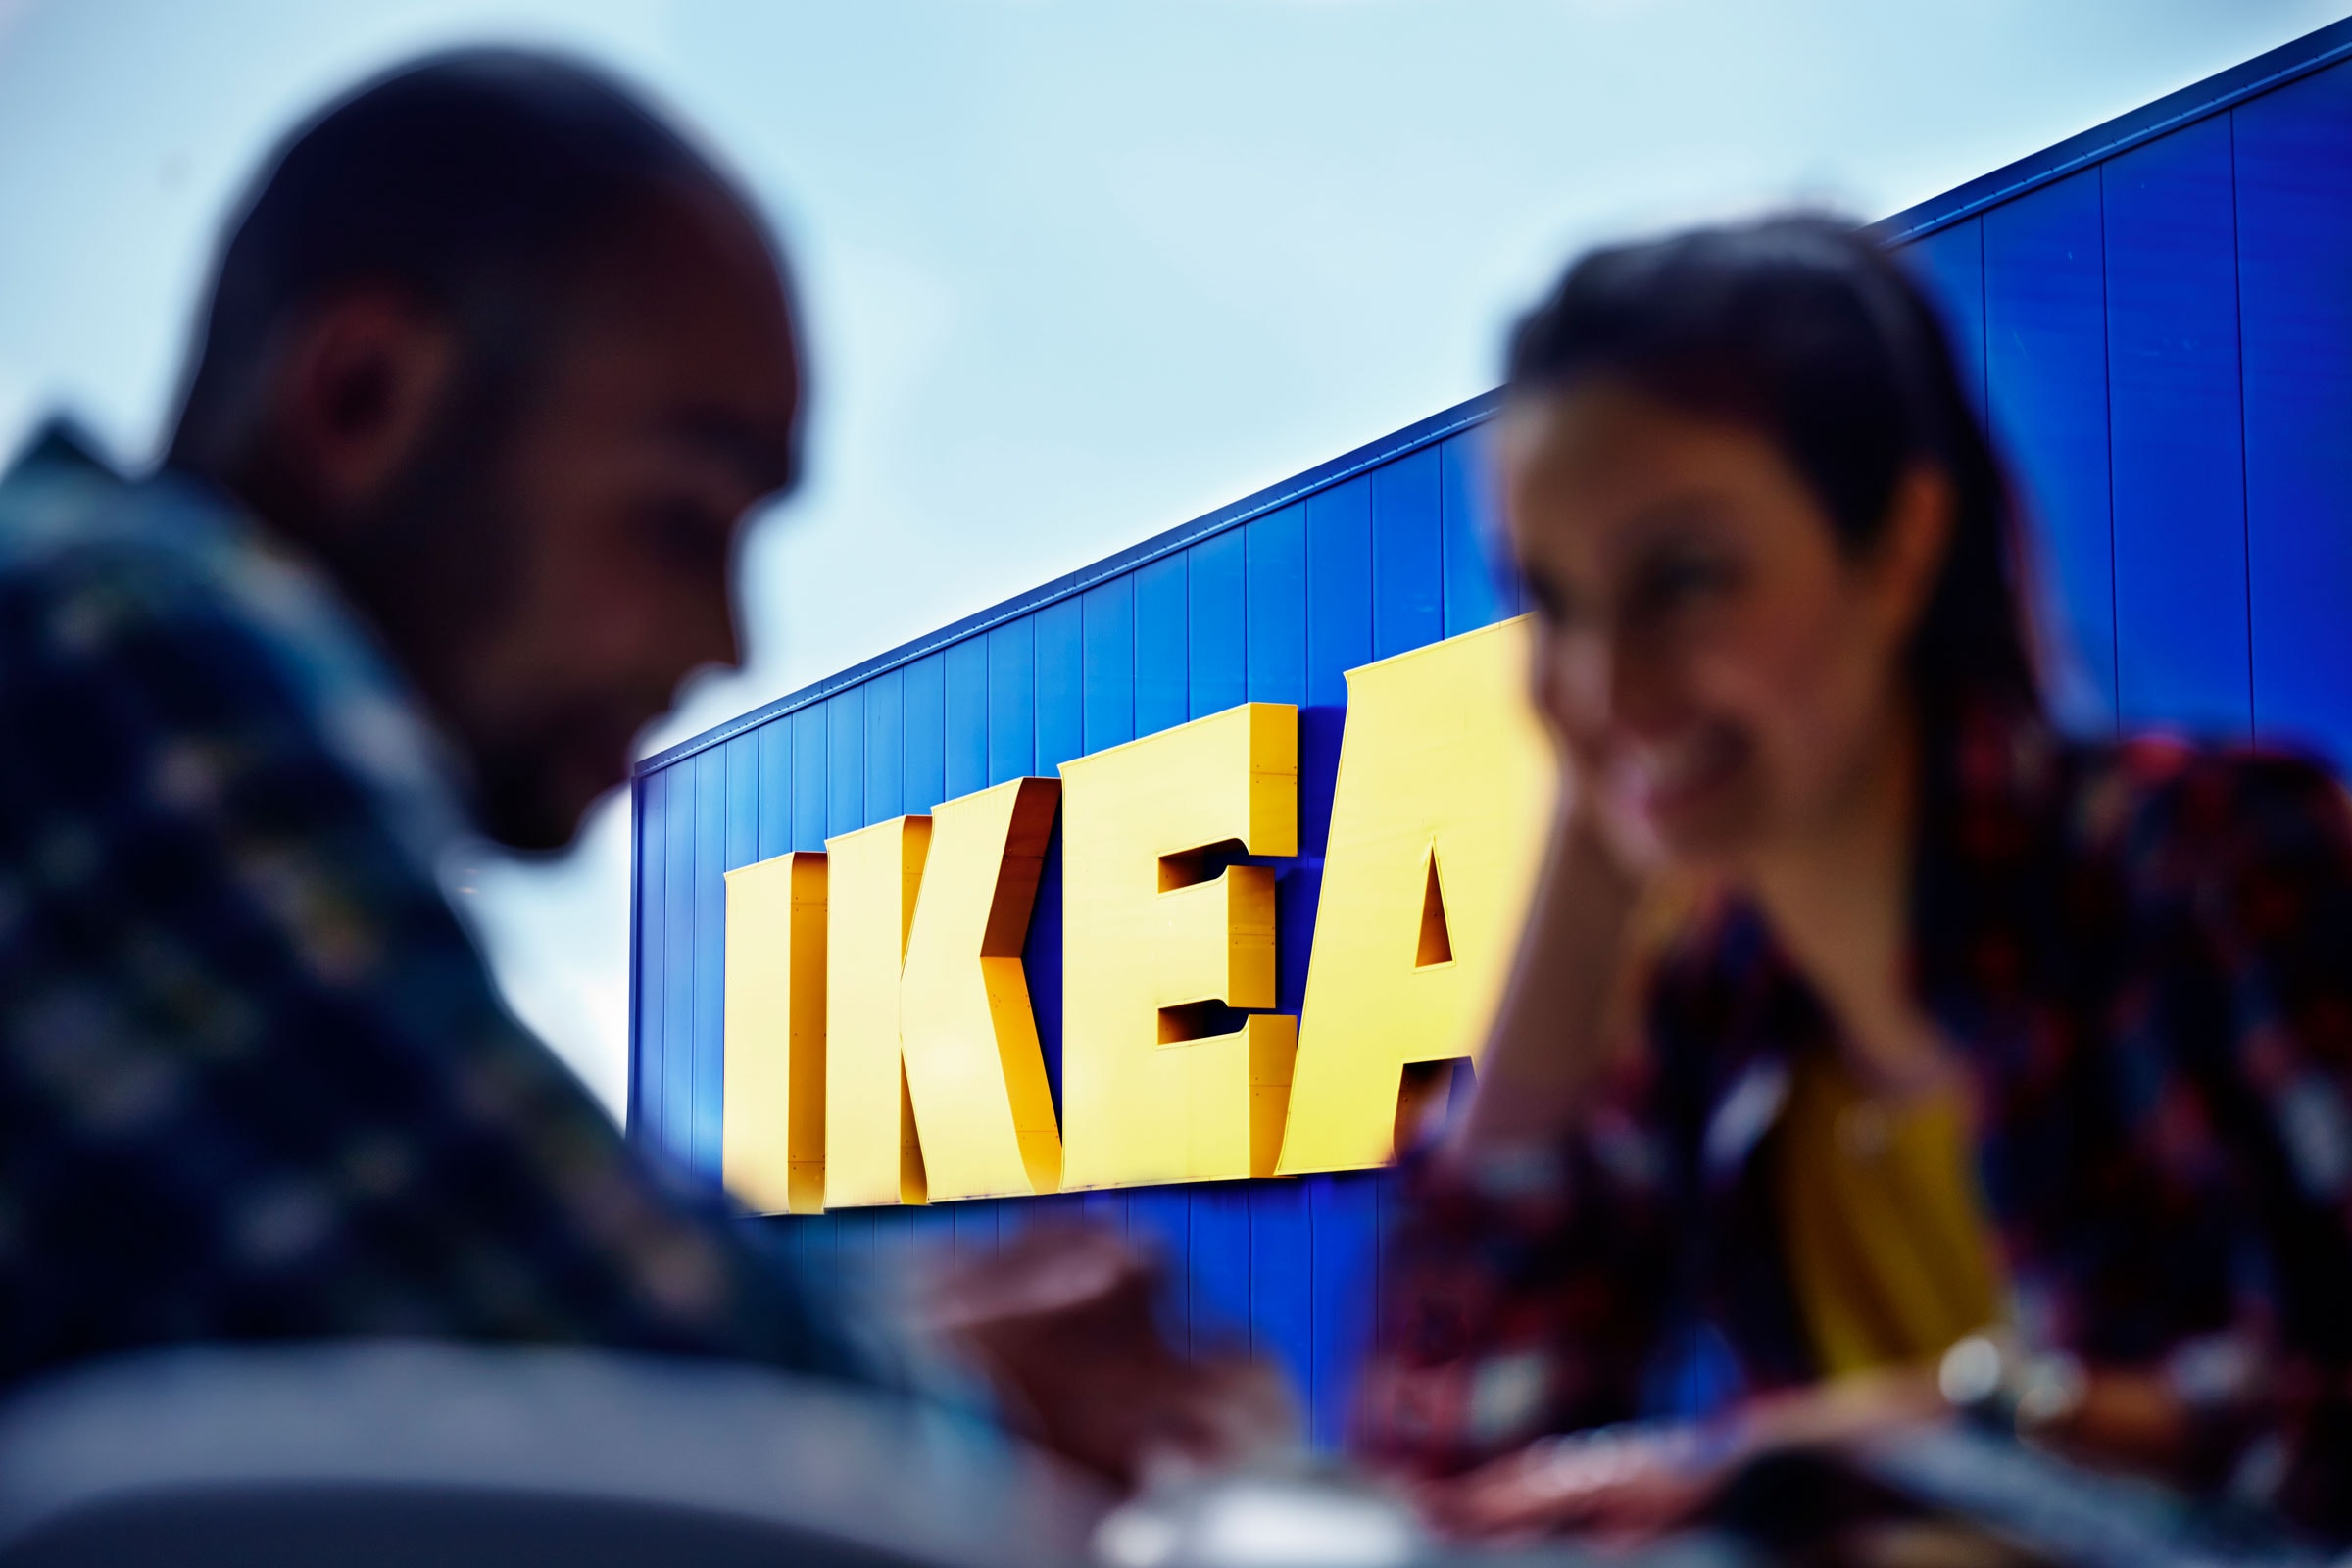 blurry-close-up-man-and-woman-in-front-of-ikea-store